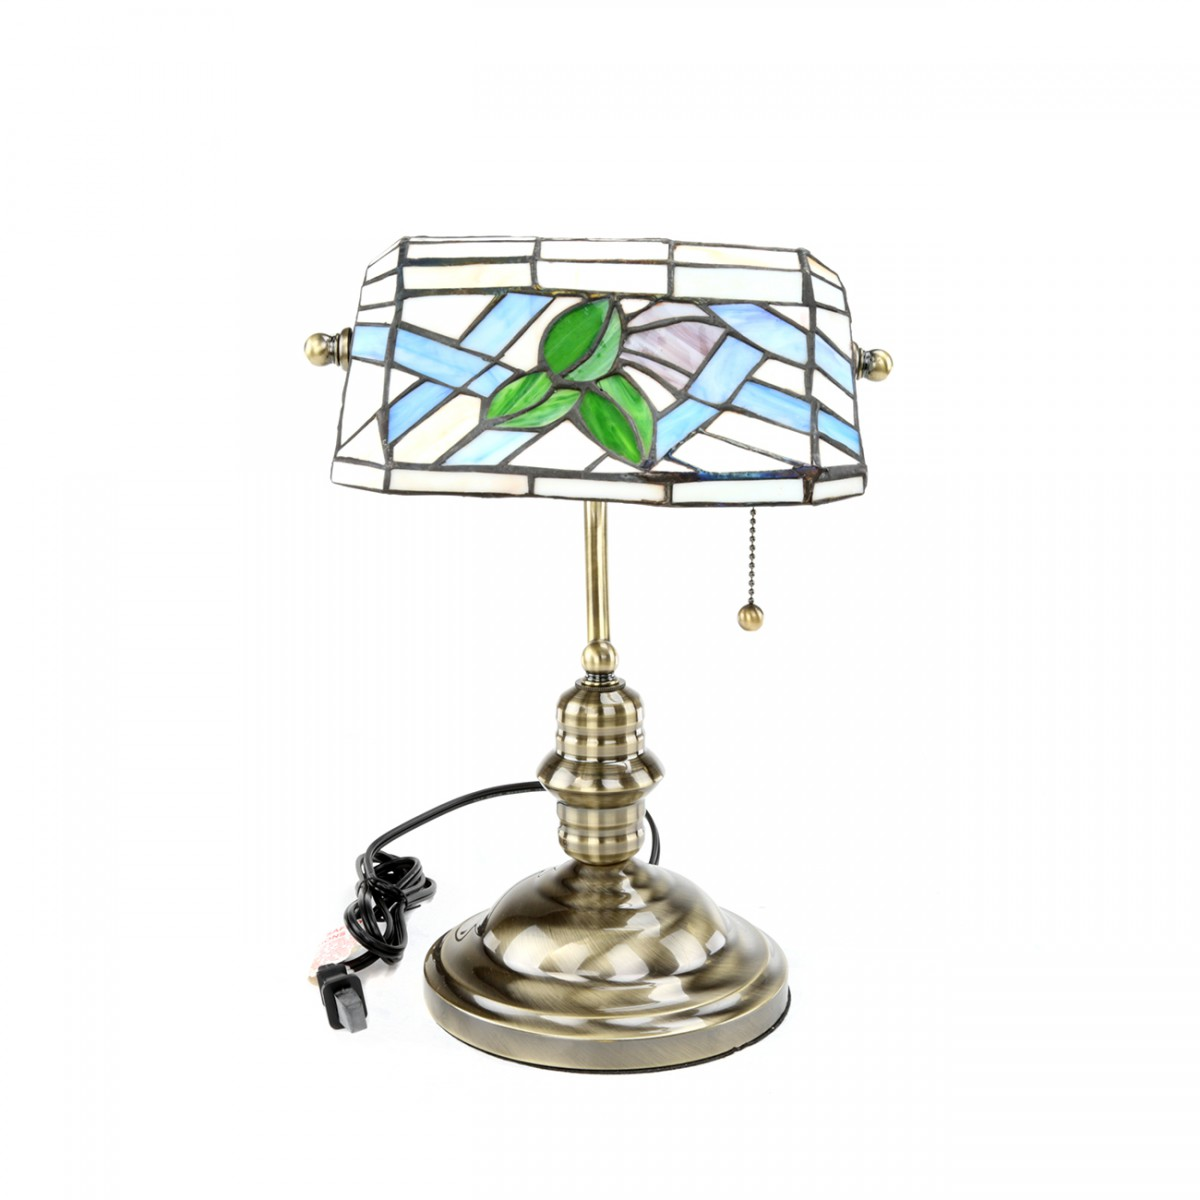 Table Lamp Antique Brass Style Stained Glass 14H Designer Table Lamps Bedside Lamp And Light Modern Design Home Table Lamps